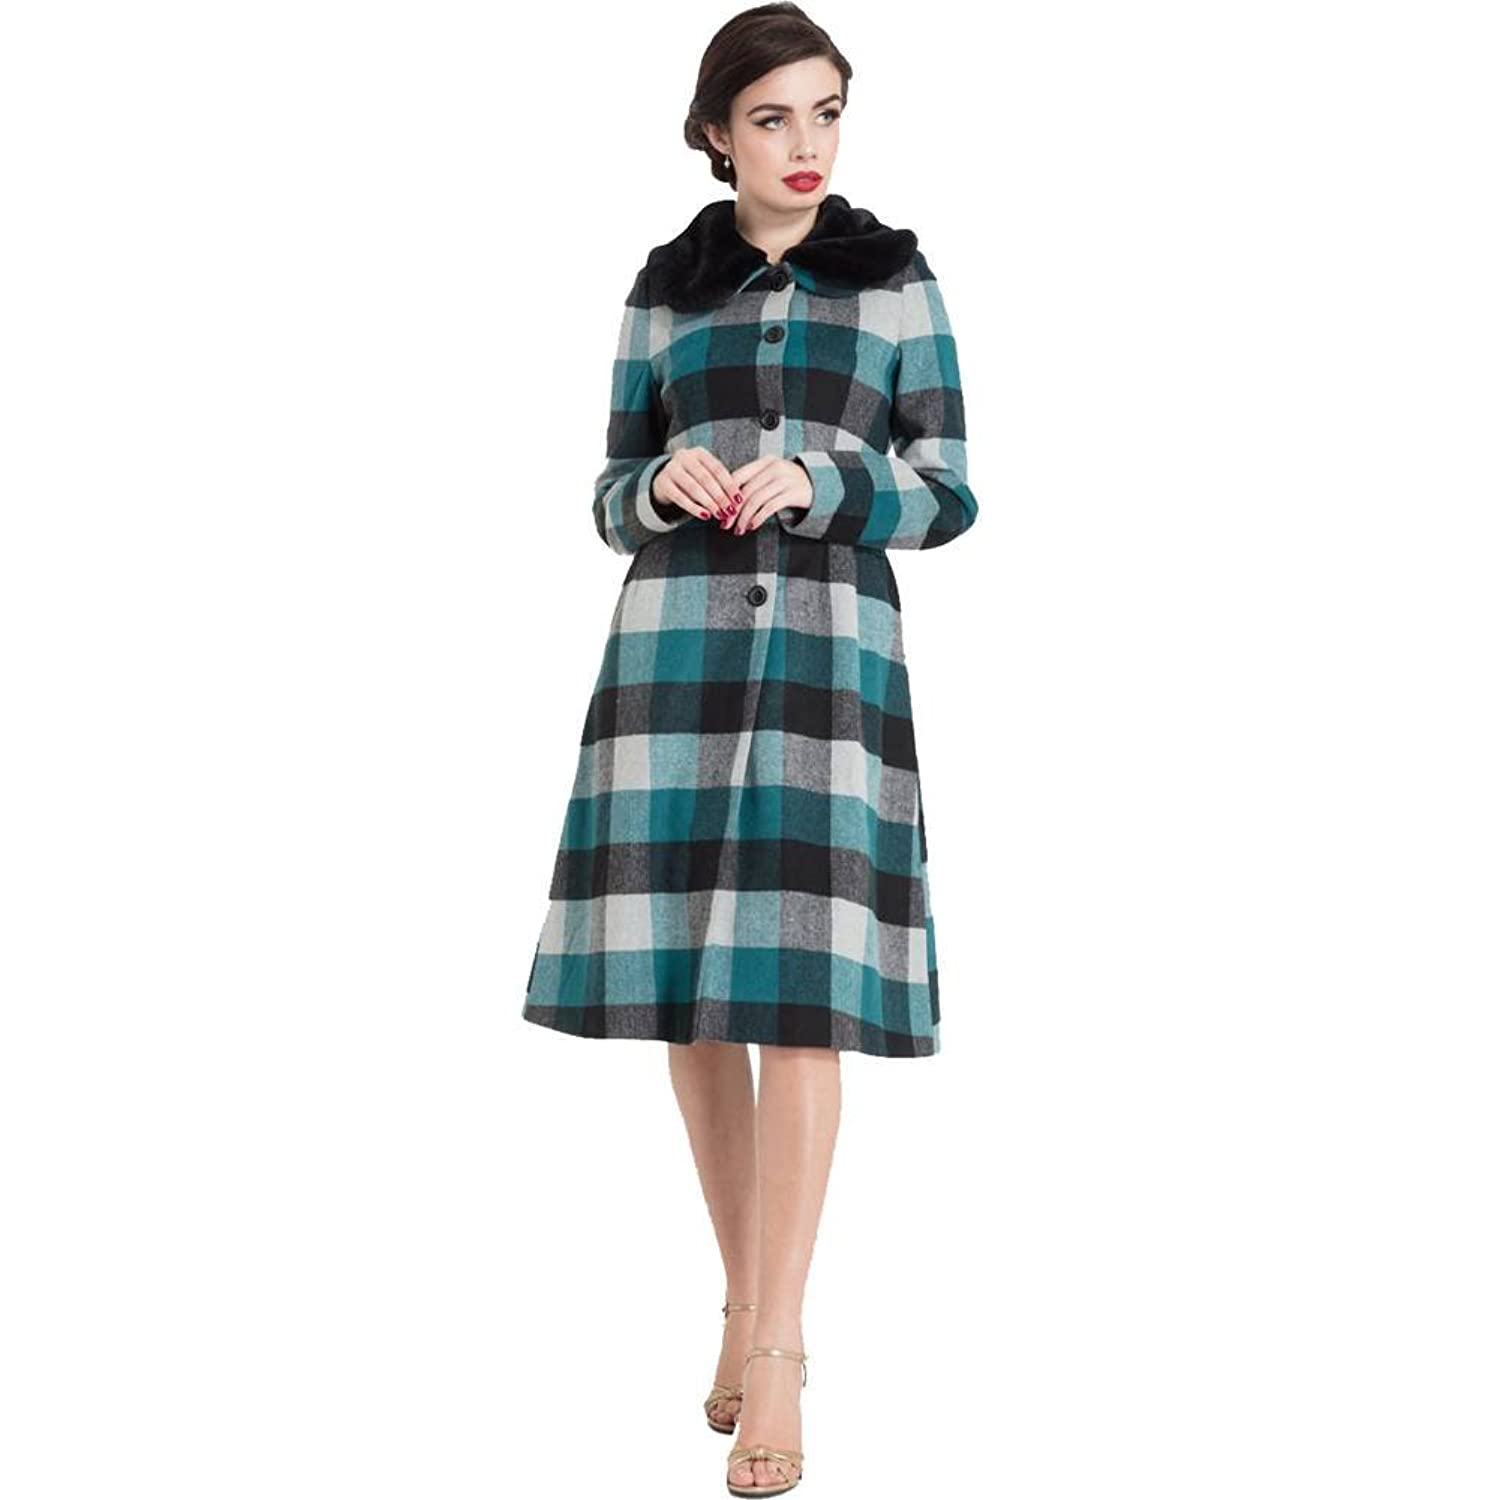 Vintage Coats & Jackets | Retro Coats and Jackets Voodoo Vixen Womens Beatrice Woolly Check Coat Blue $118.99 AT vintagedancer.com